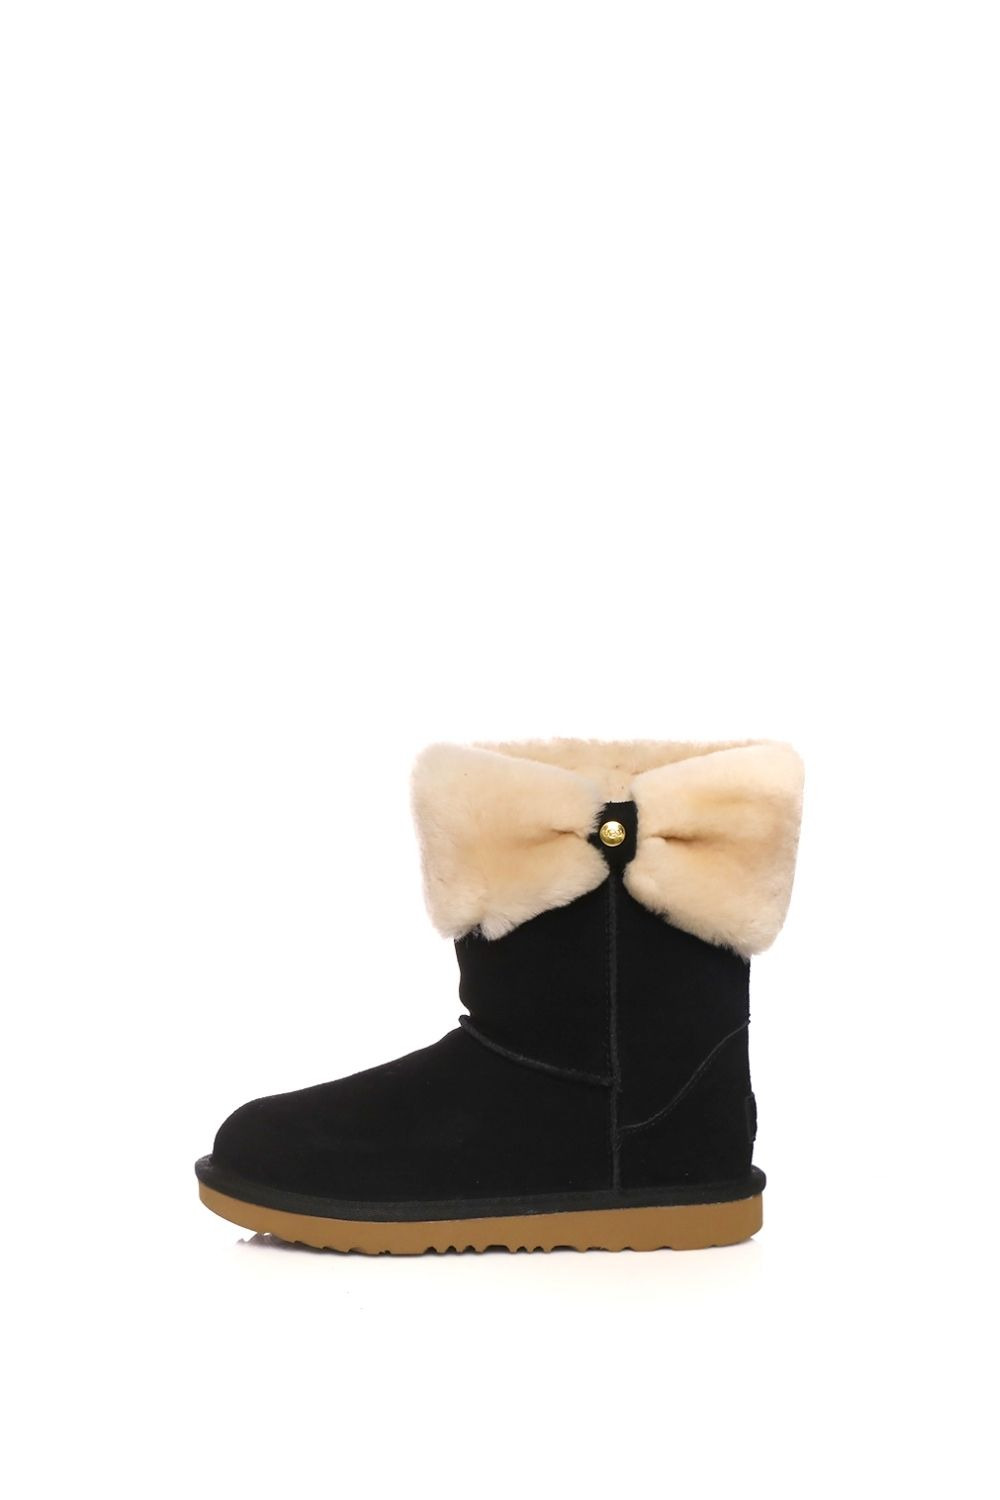 d4a0ede48e9 Collective Online UGG – Κοριτσίστικα μποτάκια Ramona Classic Short II μαύρα